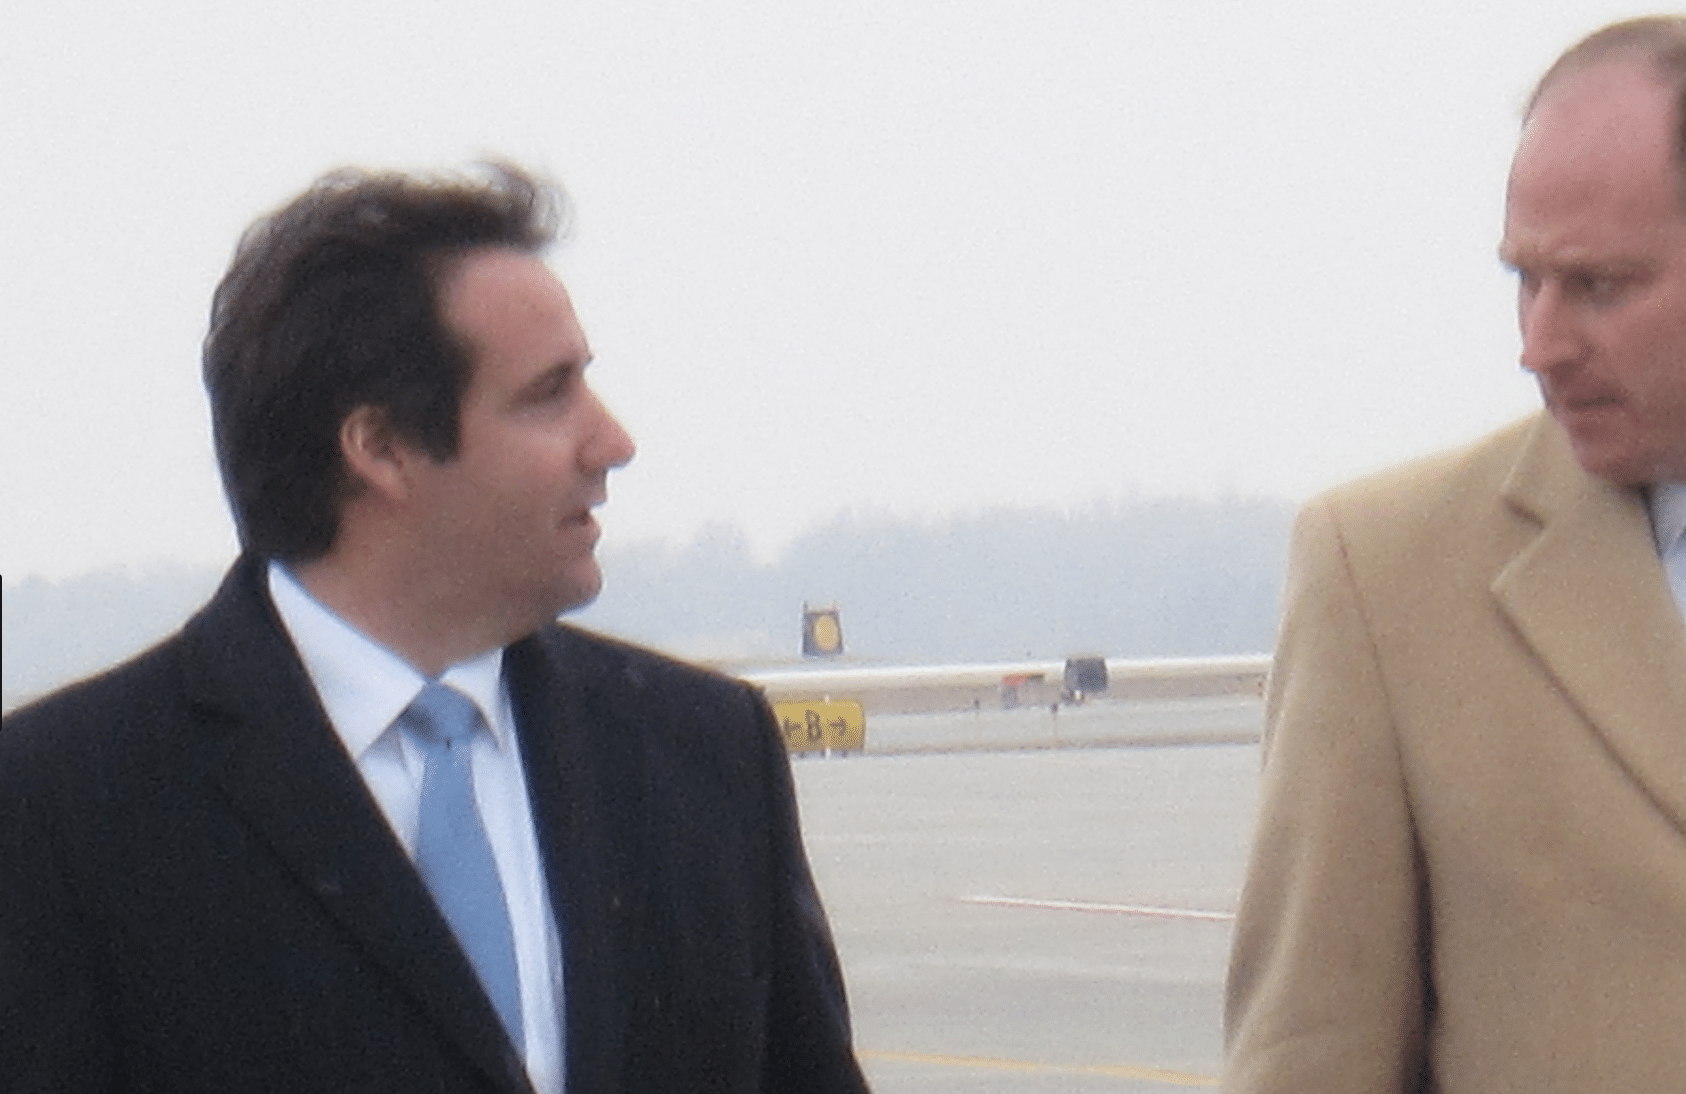 Avenatti: Cohen Tapes Contain 'very damaging admissions' By Trump on 'critical issues'